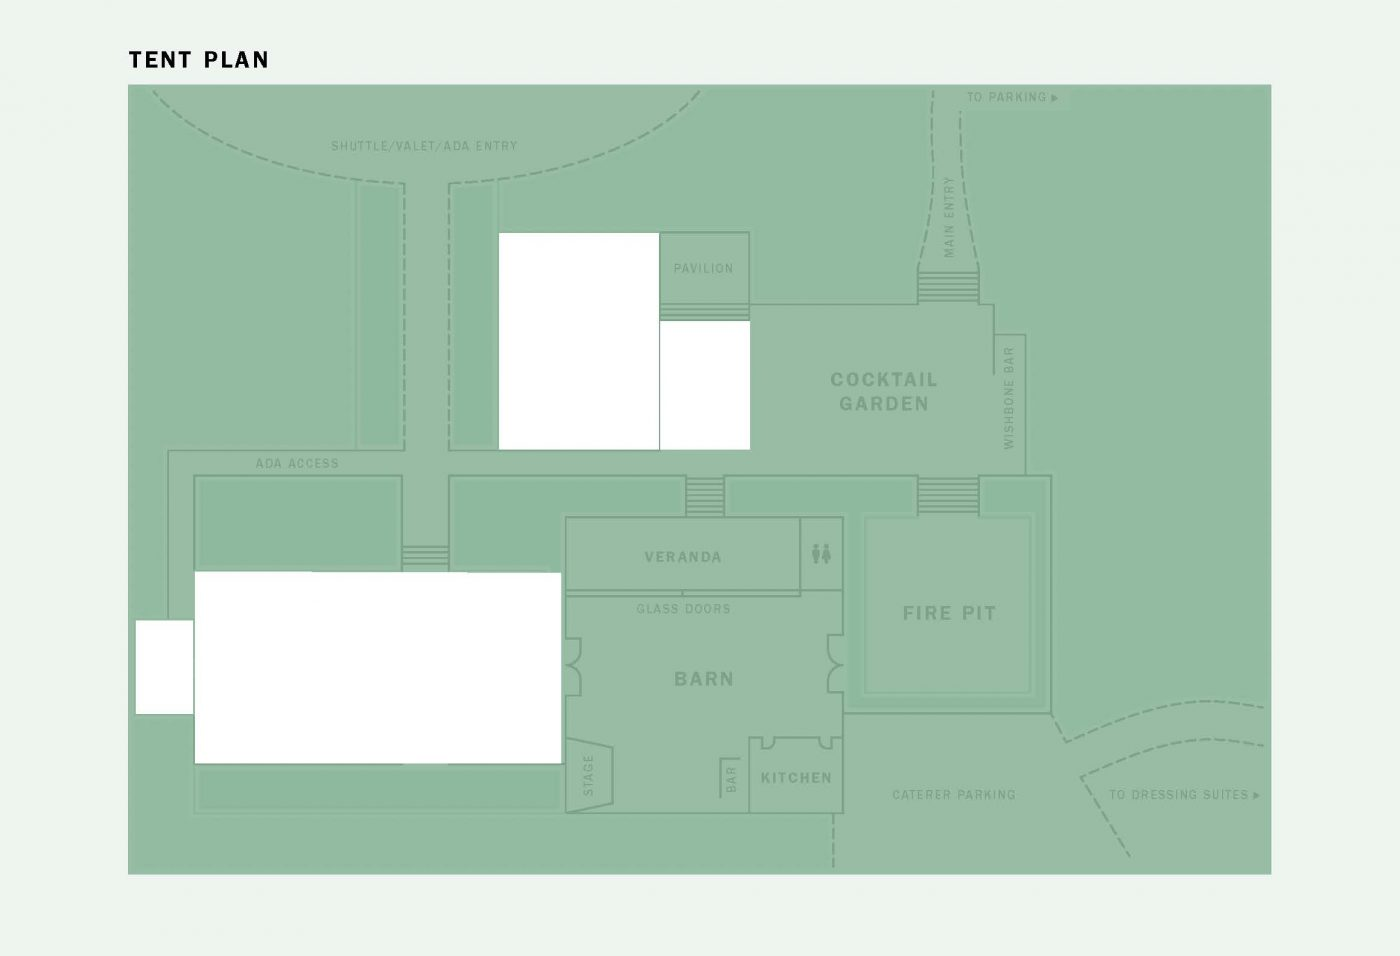 Venue Floor Plan with Tents